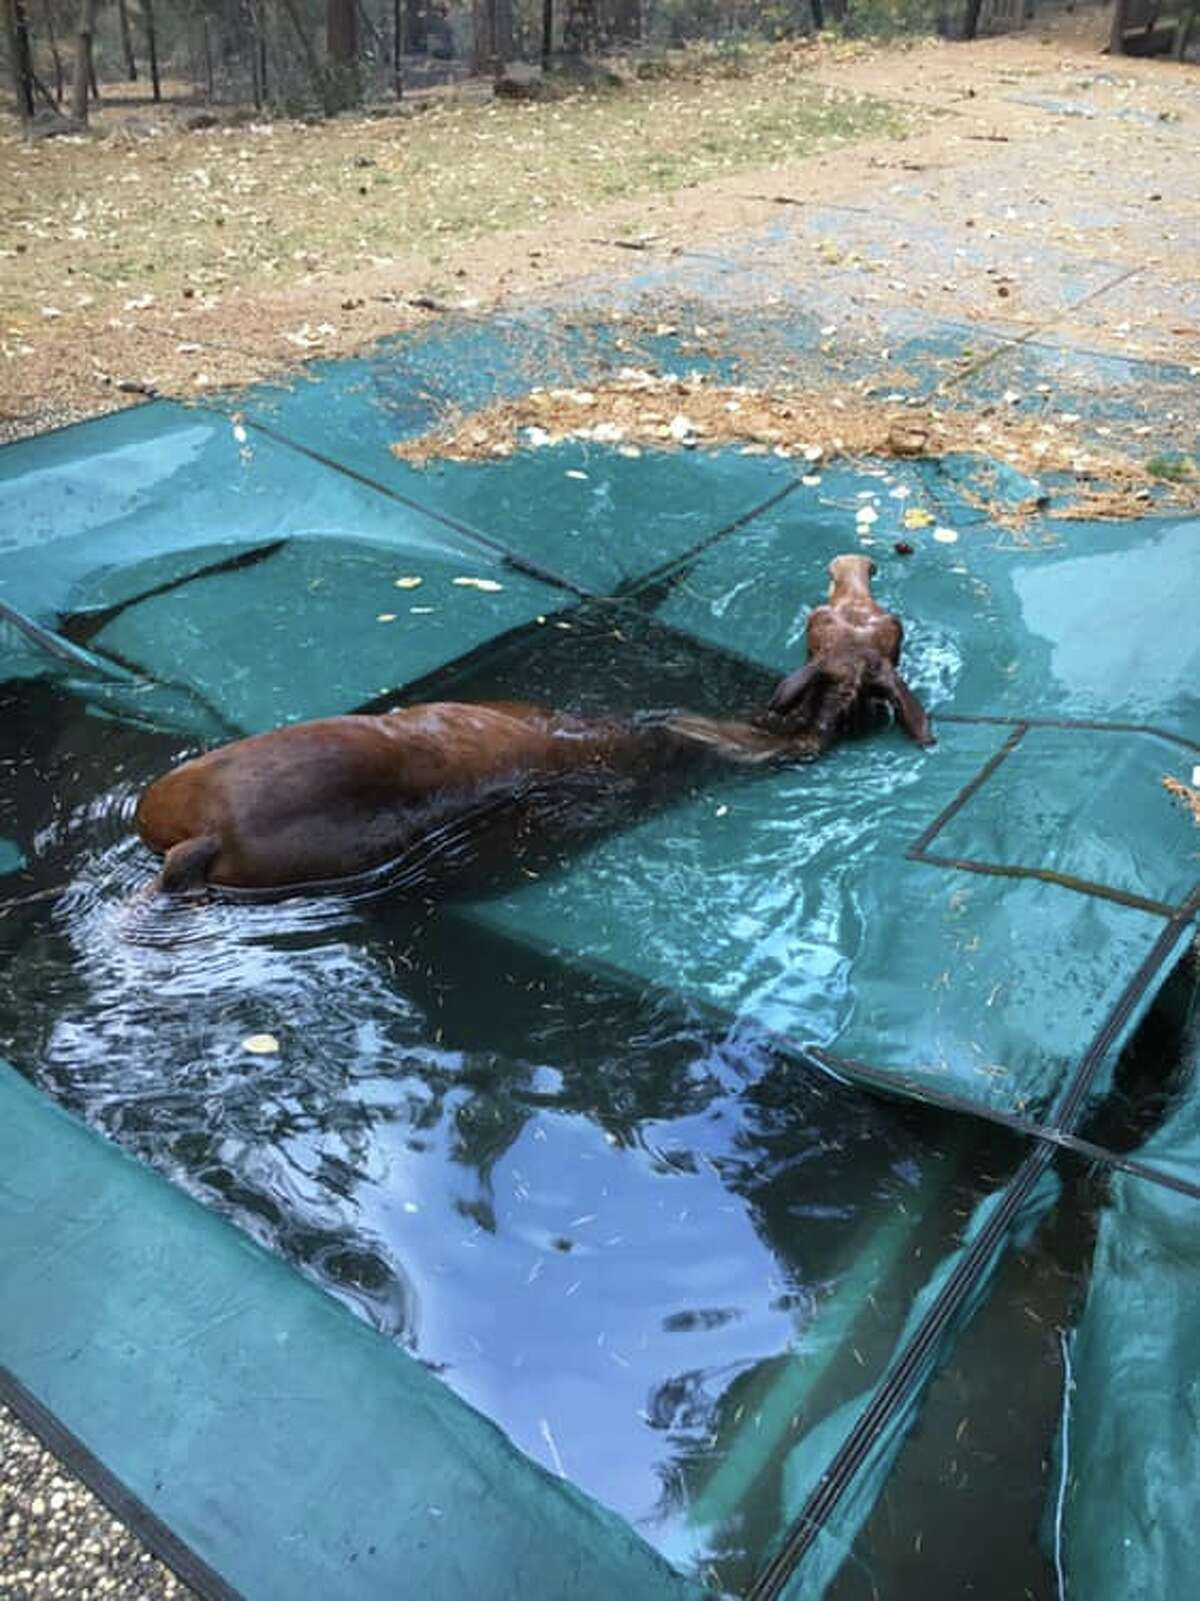 Jeff Hill and Geoff Sheldon rescue a horse they found in a backyard pool in Paradise. The horse was stranded in the water for an unknown amount of time when Hill and Sheldon found it Sunday.